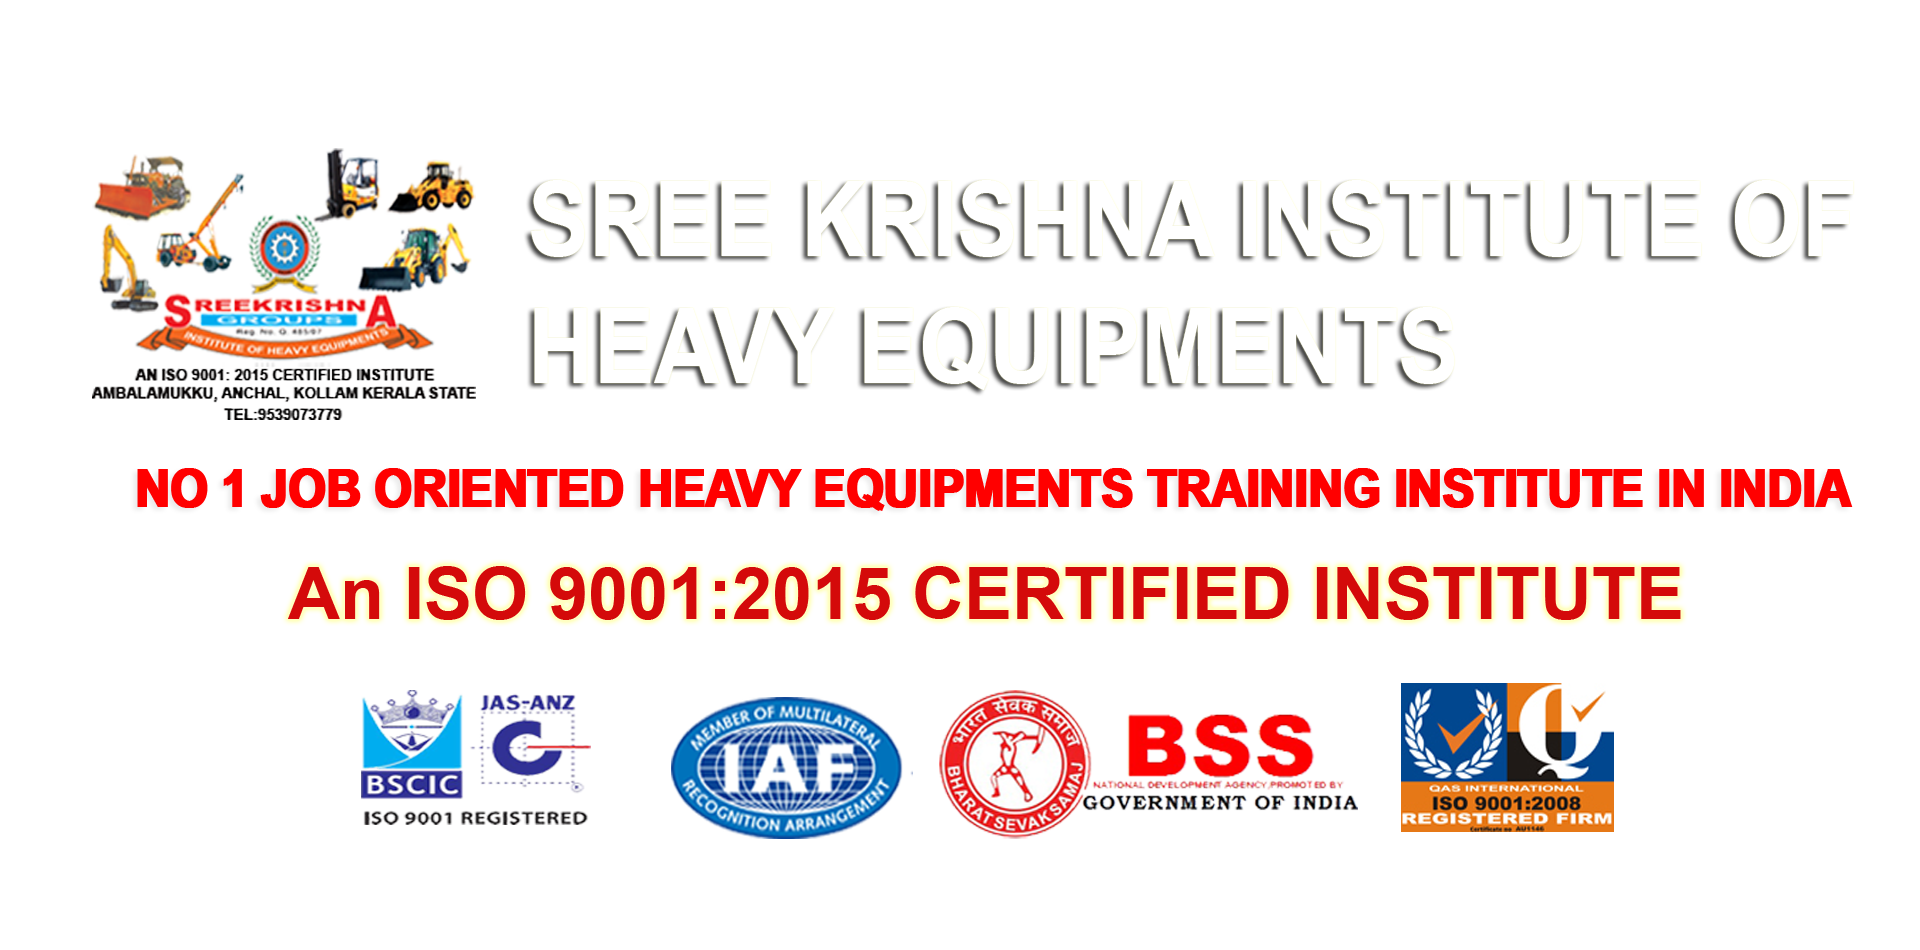 Sreekrishna Institute of Heavy Equipments